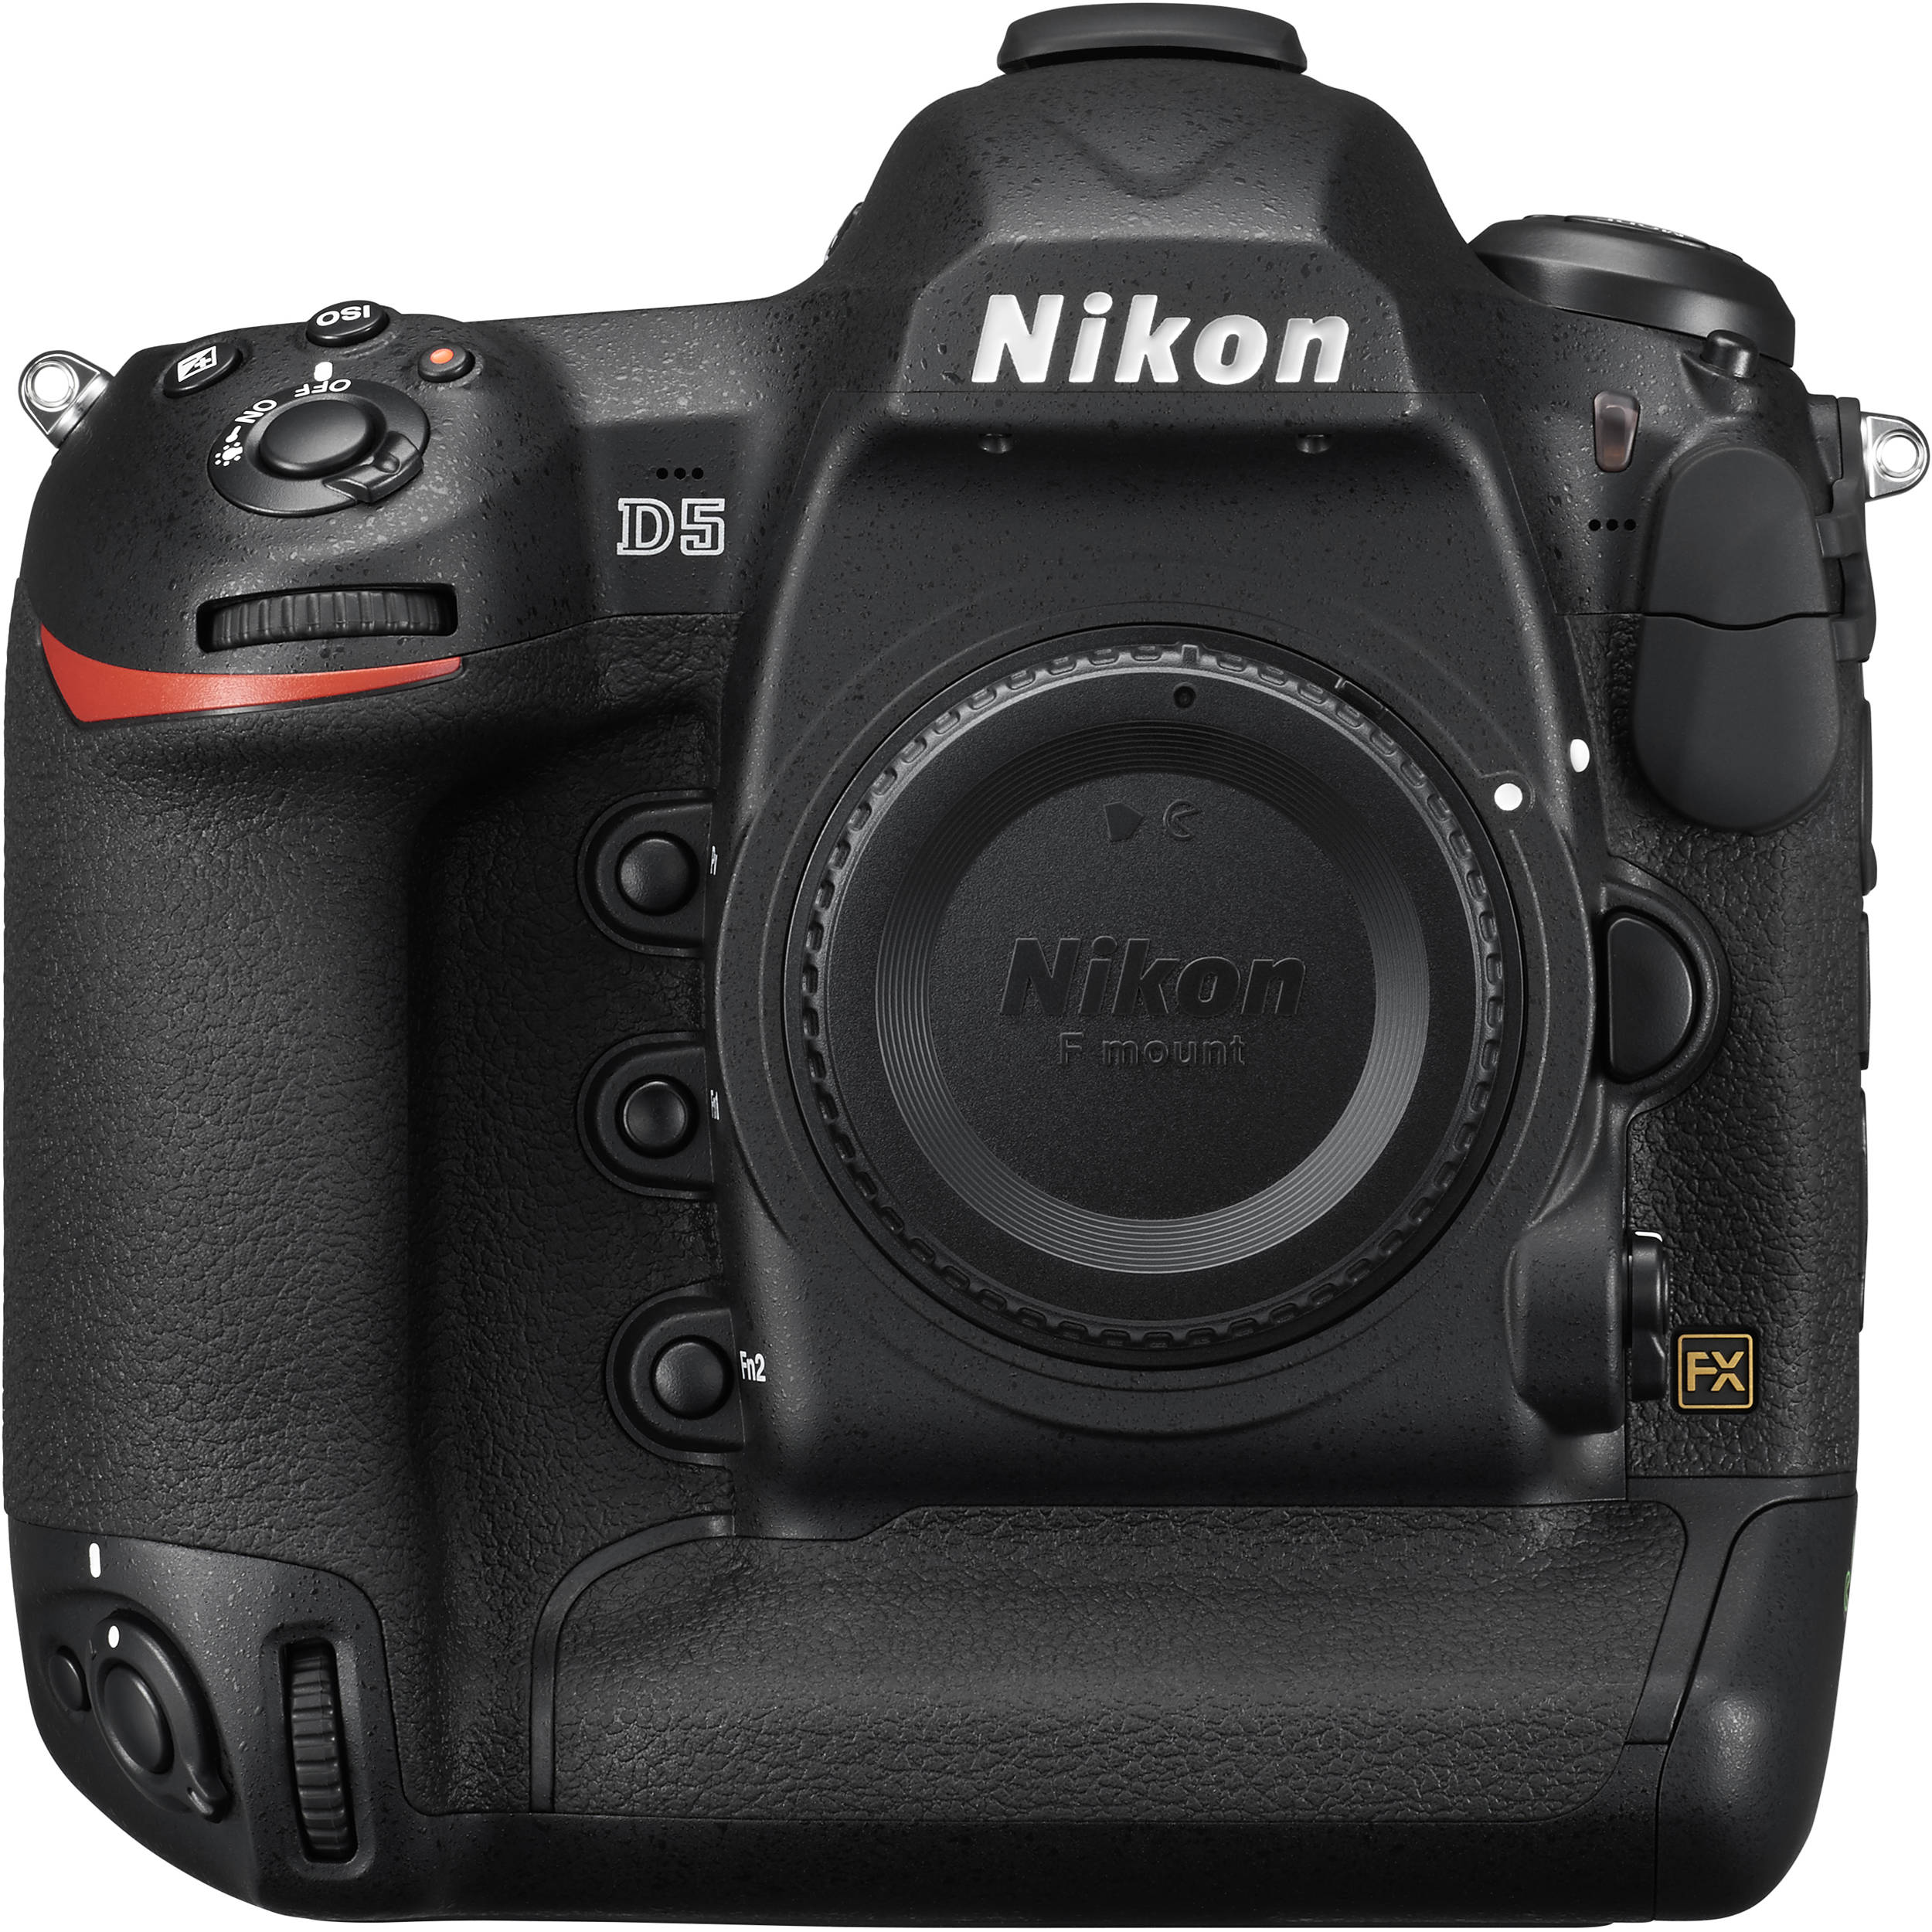 Image result for Nikon D5 Body